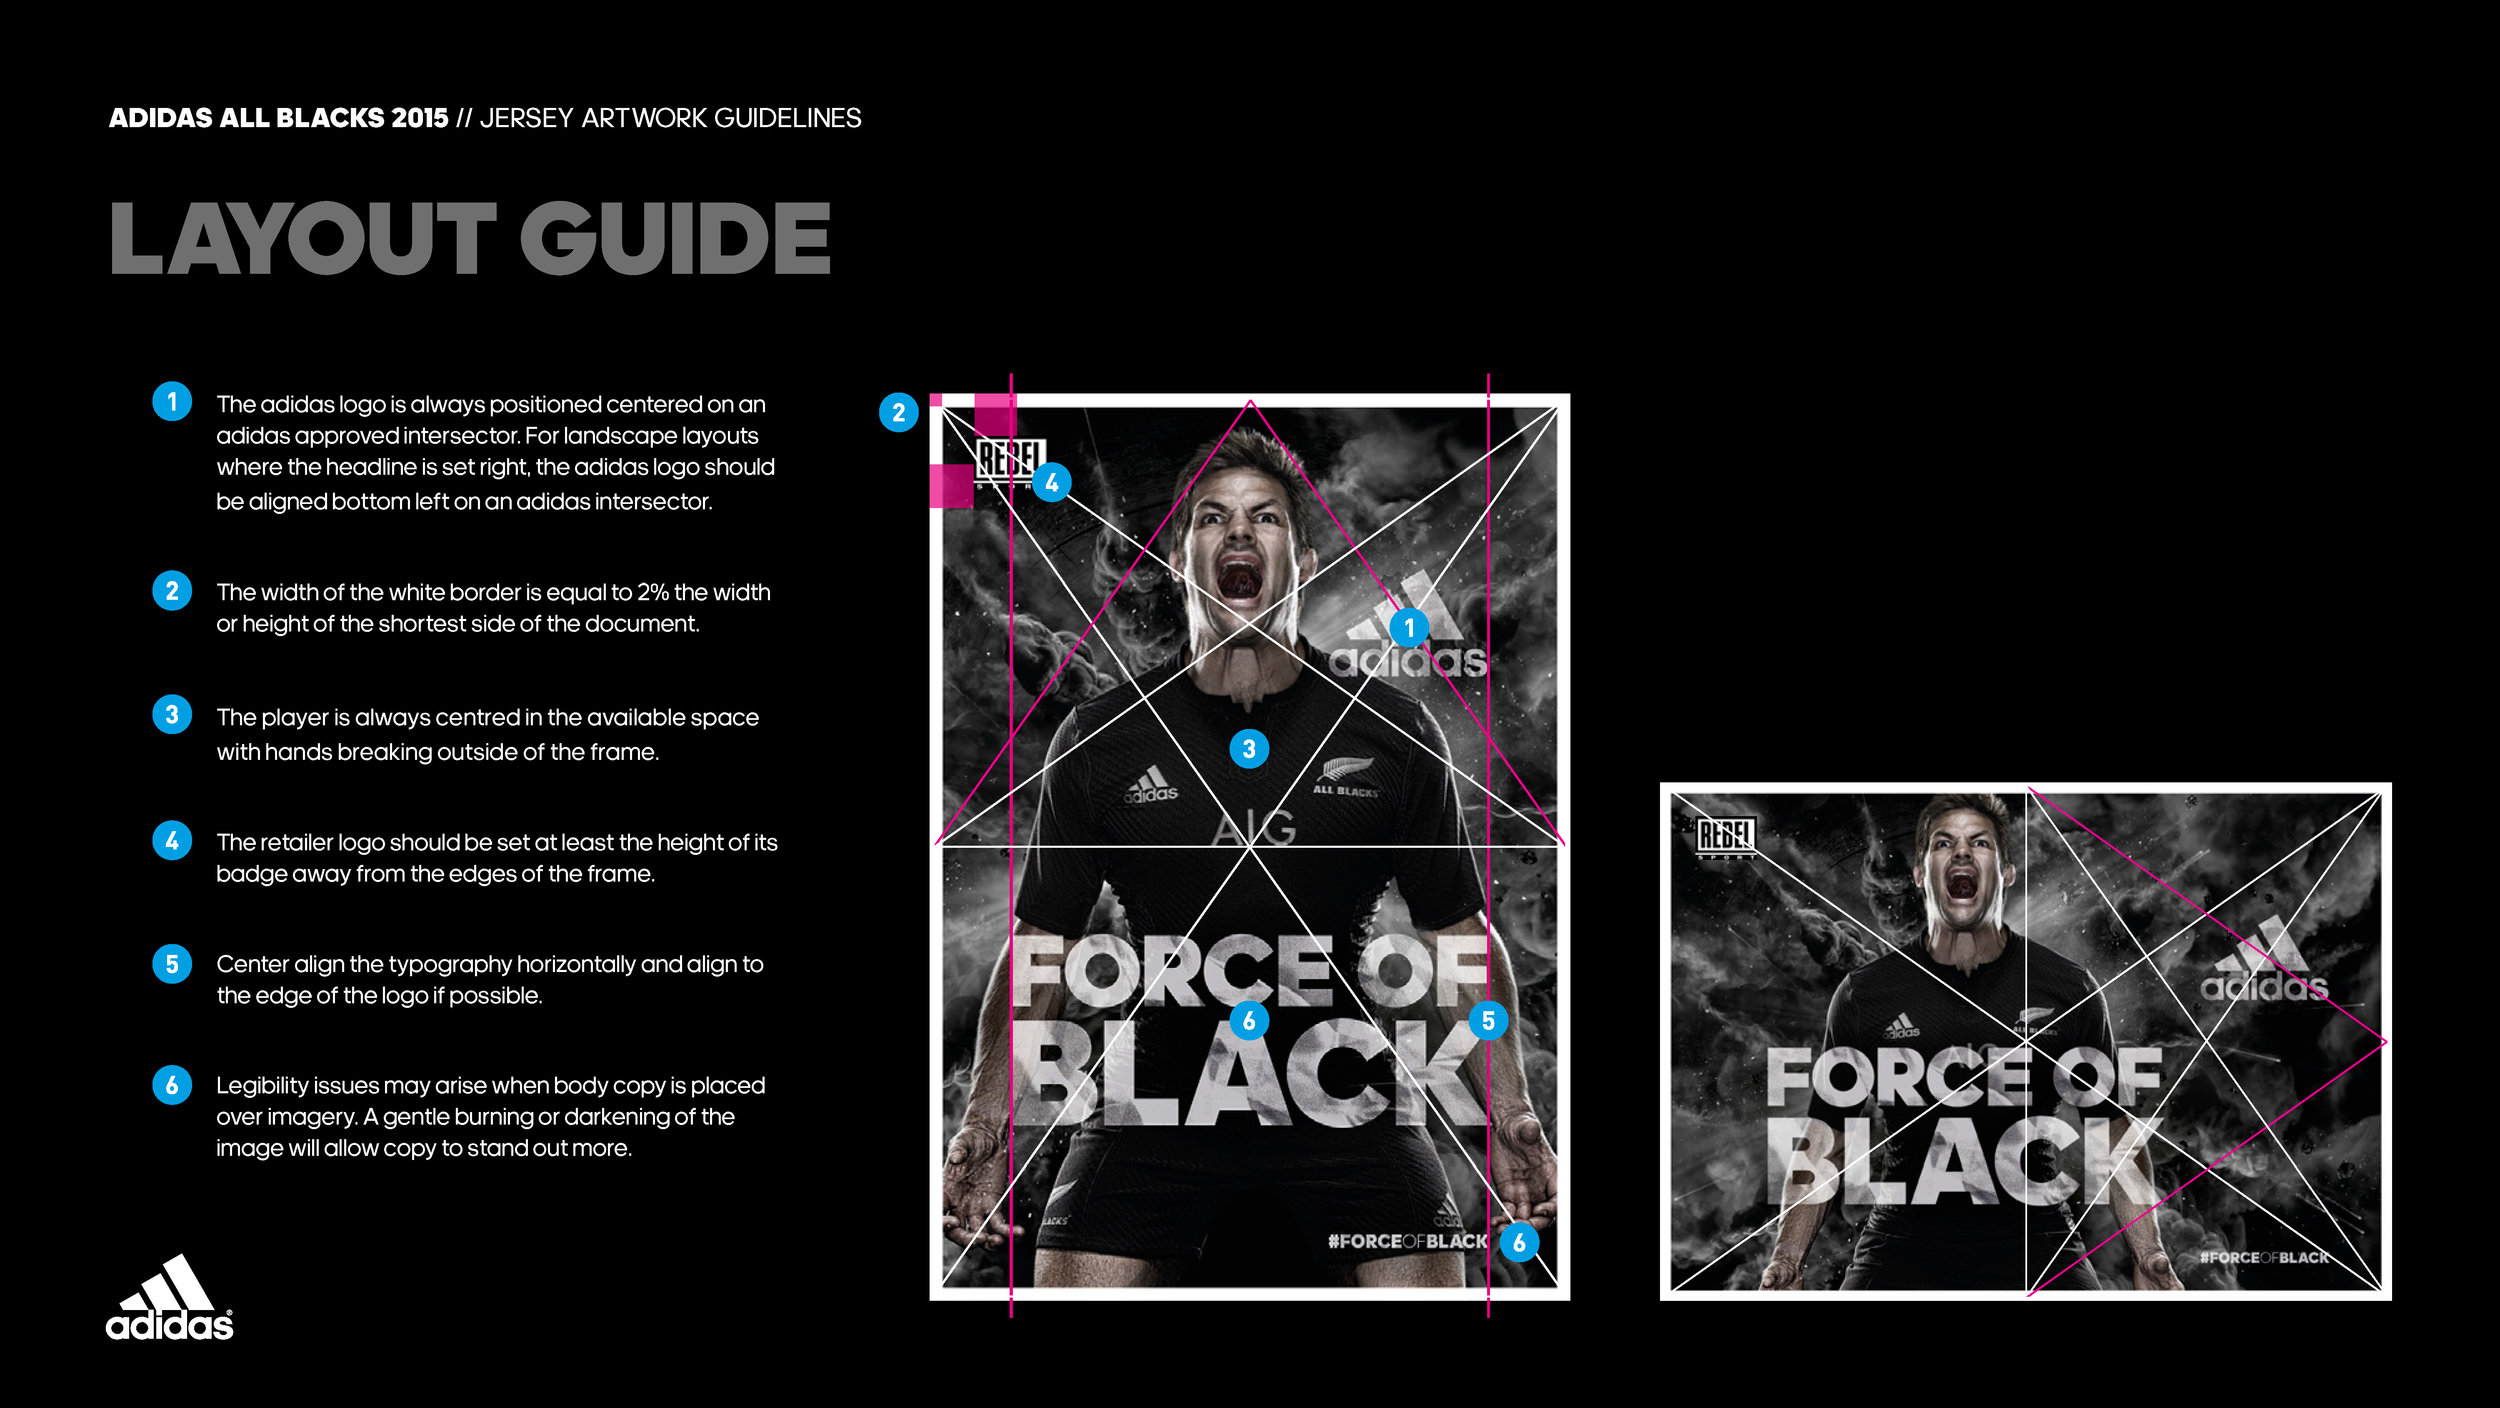 adidas FOB 2015 JERSEY ALL PLAYER Artwork Guidelines 0.7_Page_14.jpg